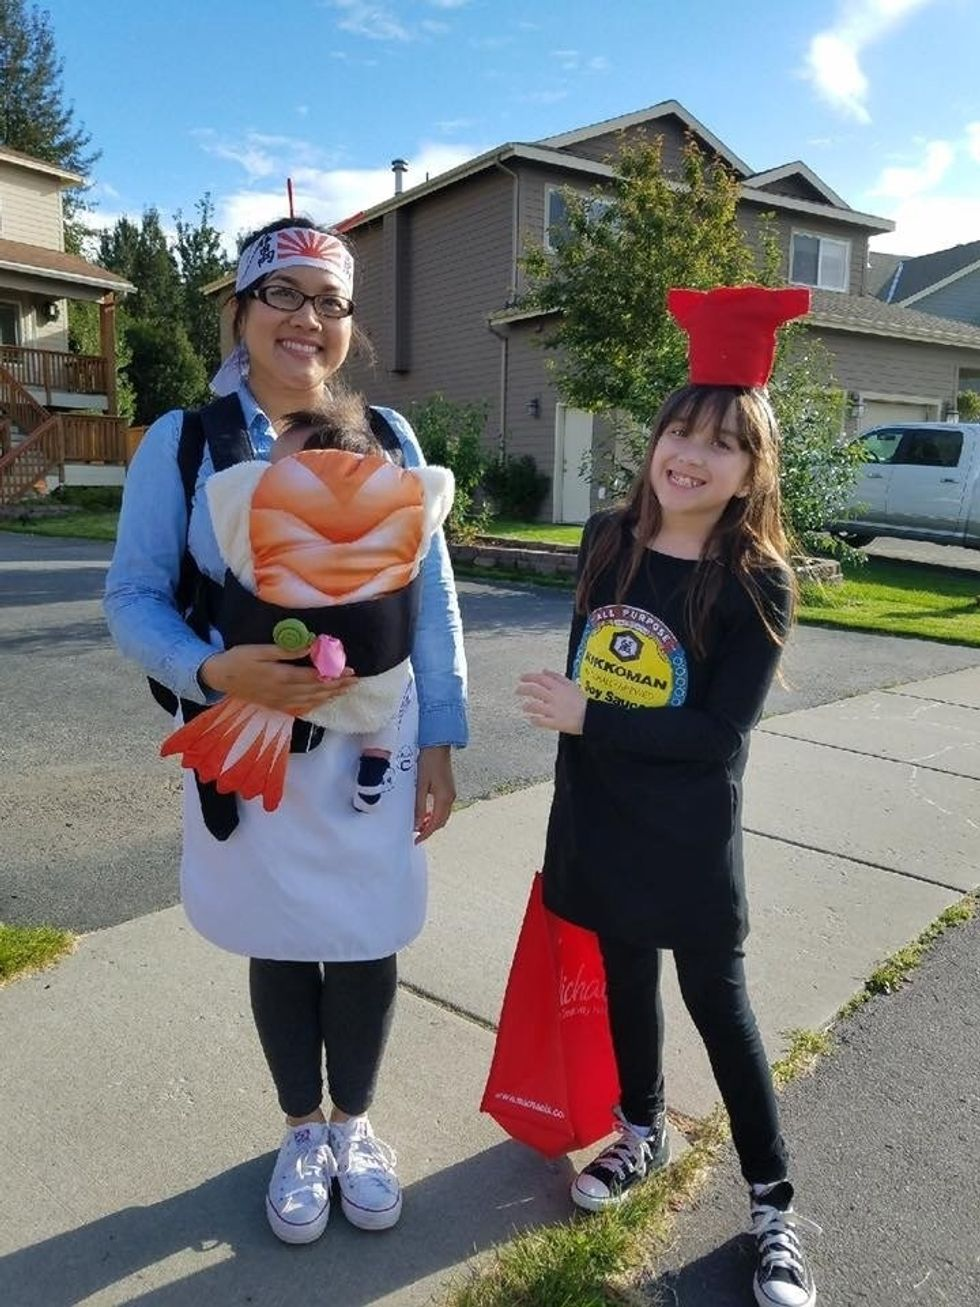 Halloween Costume Ideas For Family Of 3.40 Family Halloween Costume Ideas Everyone Will Love Motherly